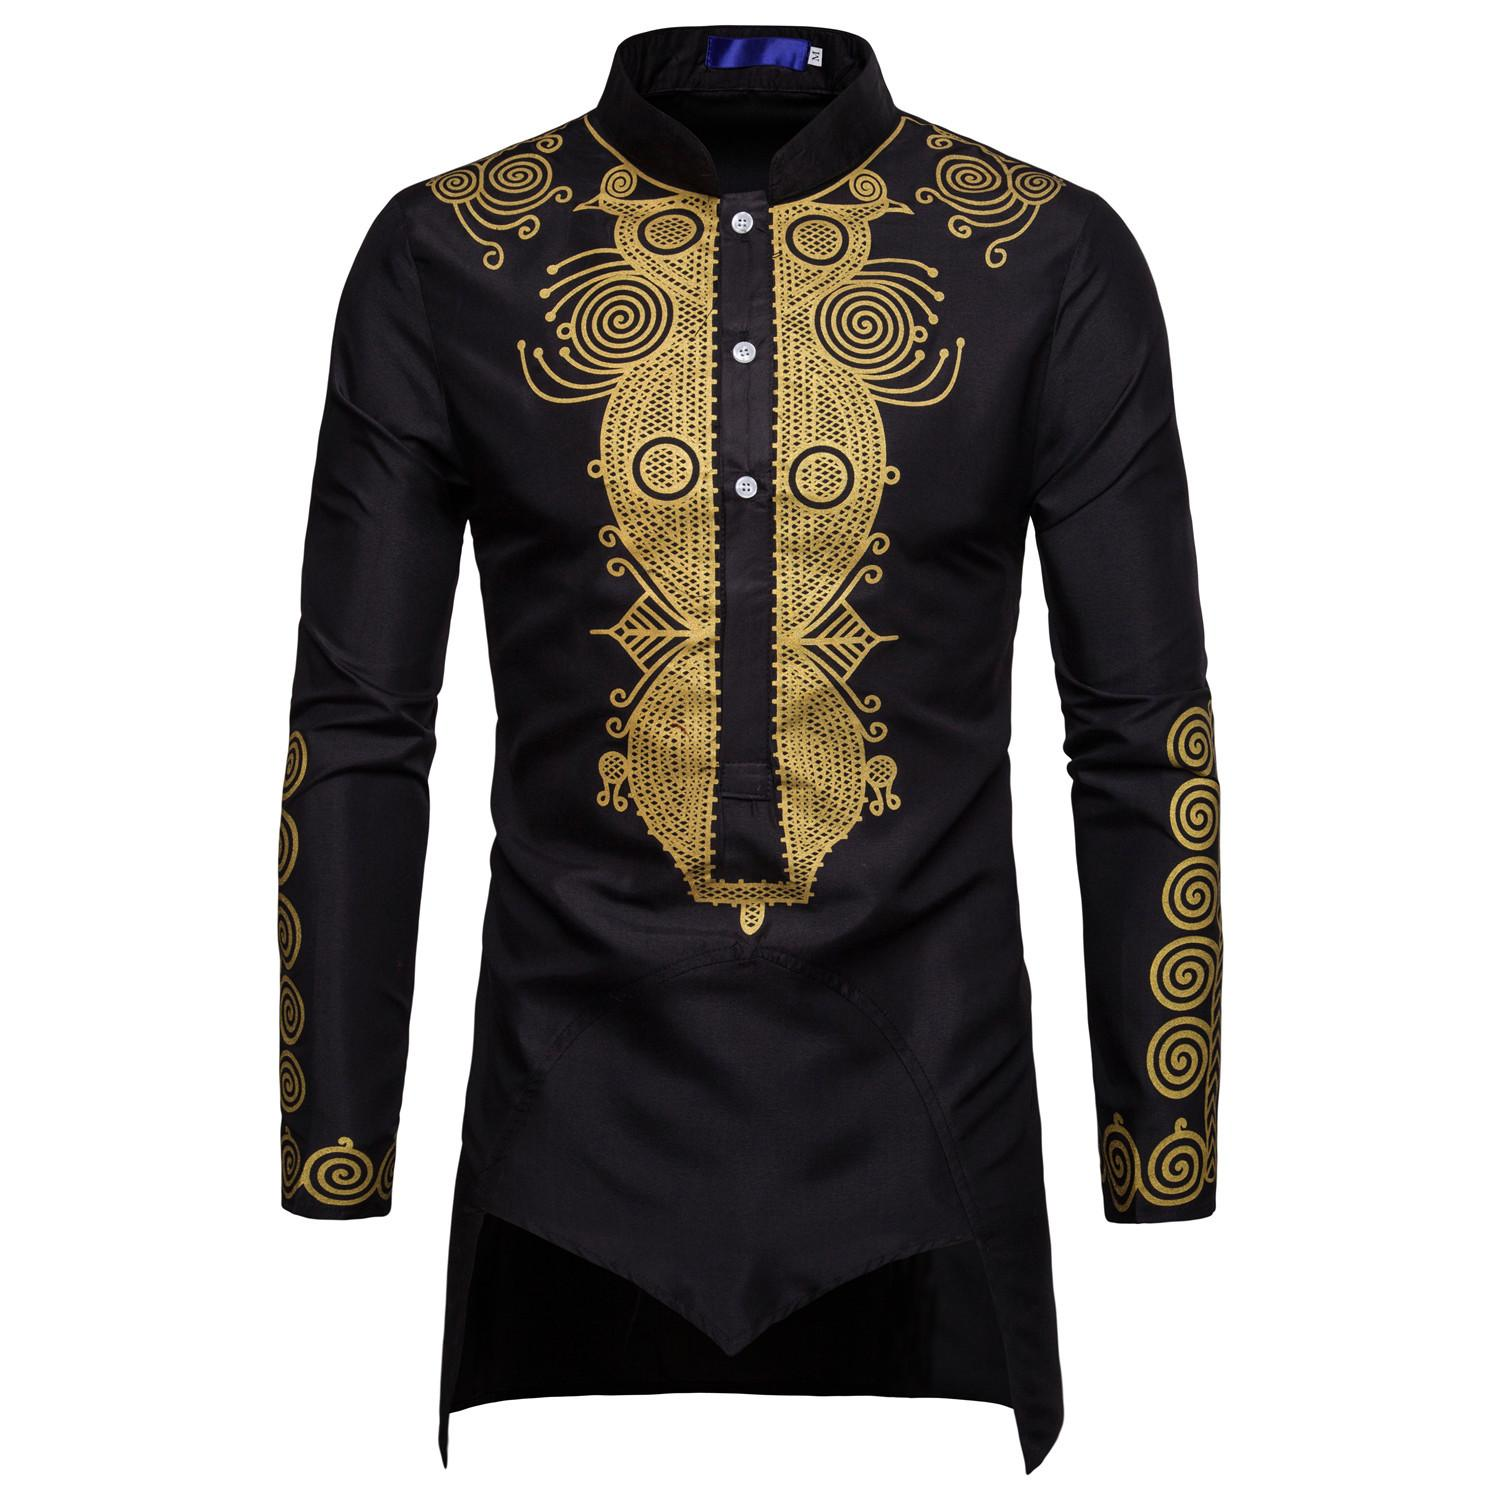 52651001c9 Men TShirt New Long Shirts Autumn And Winter Middle Eastern Style ...